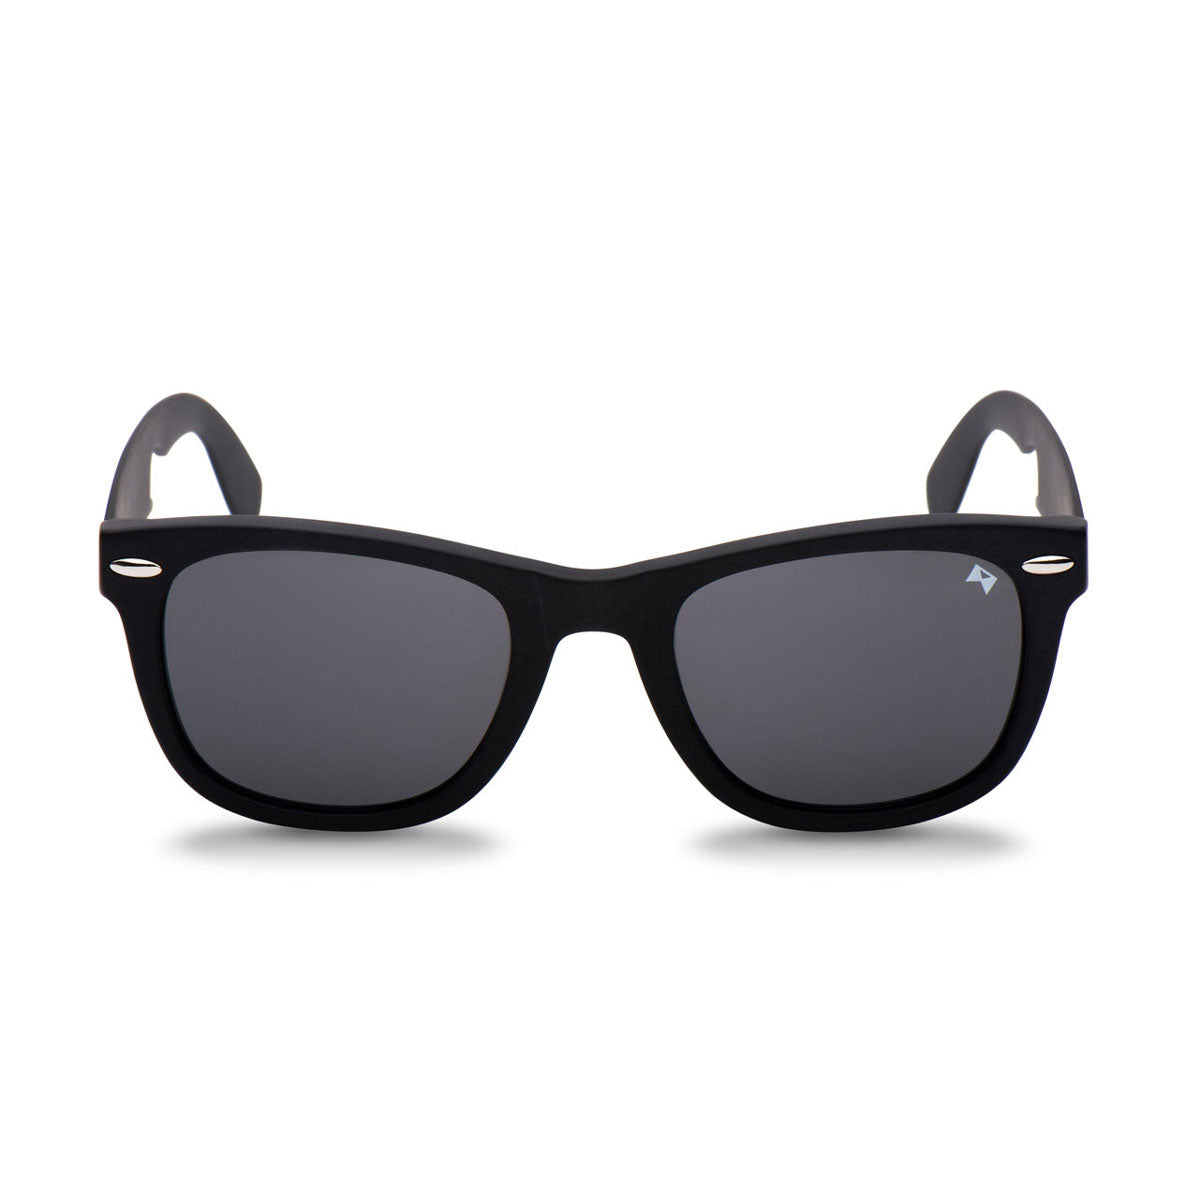 a248f7d9f17 Titanium Sunglasses by William Painter